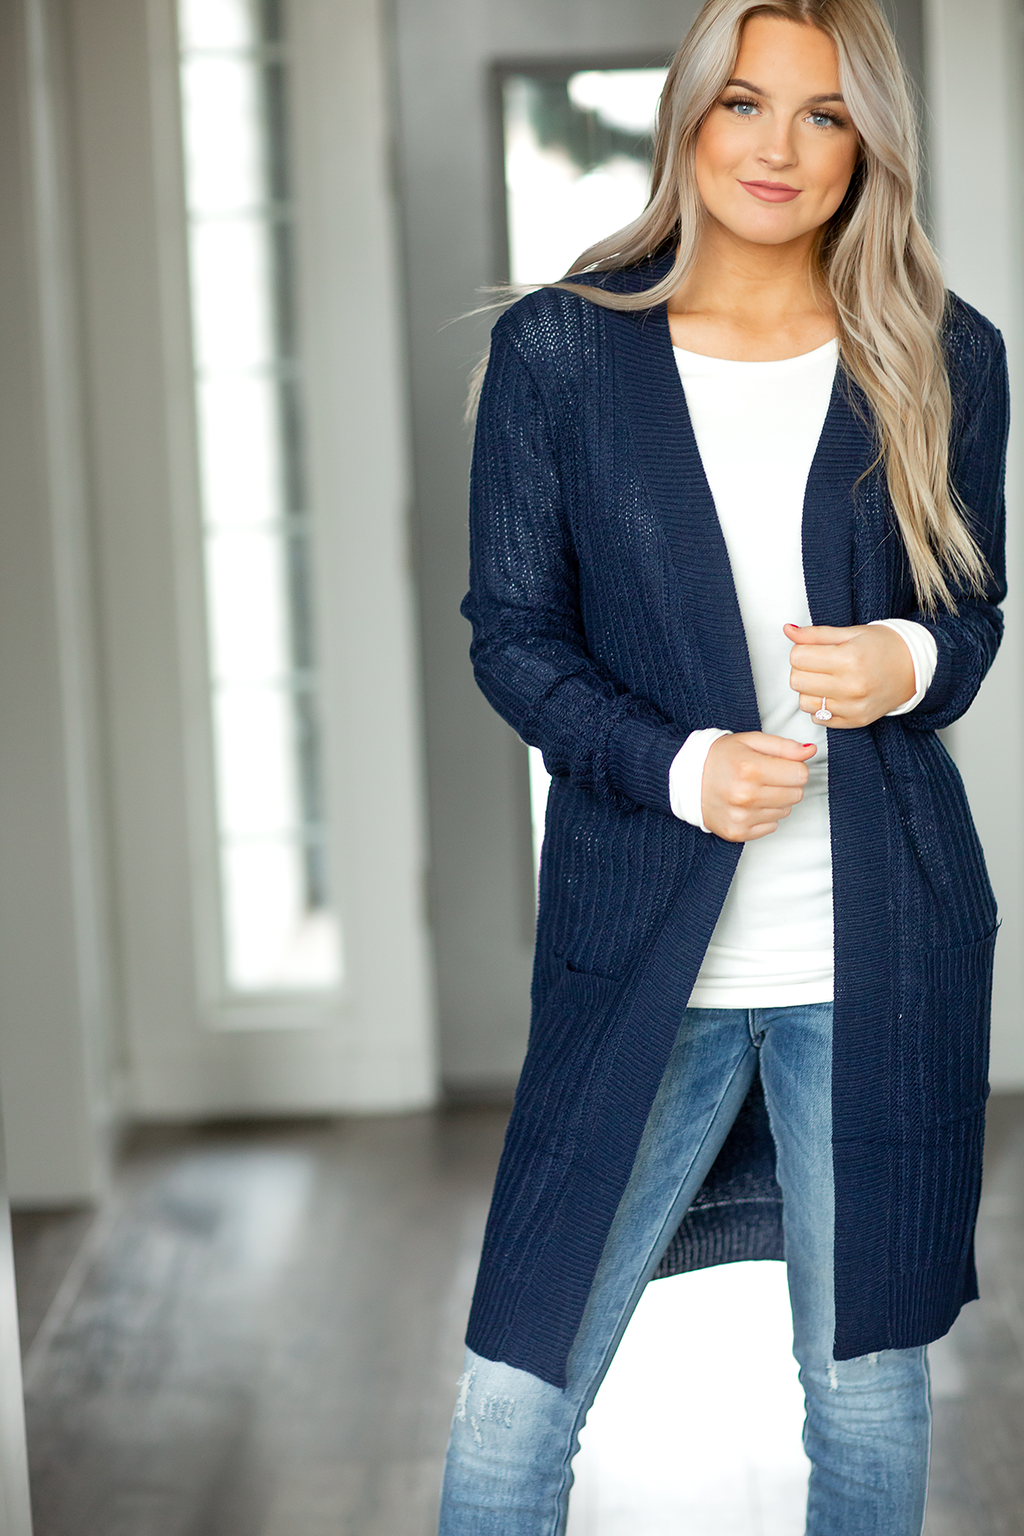 Waiting for You Sweater Duster Cardigan in Navy